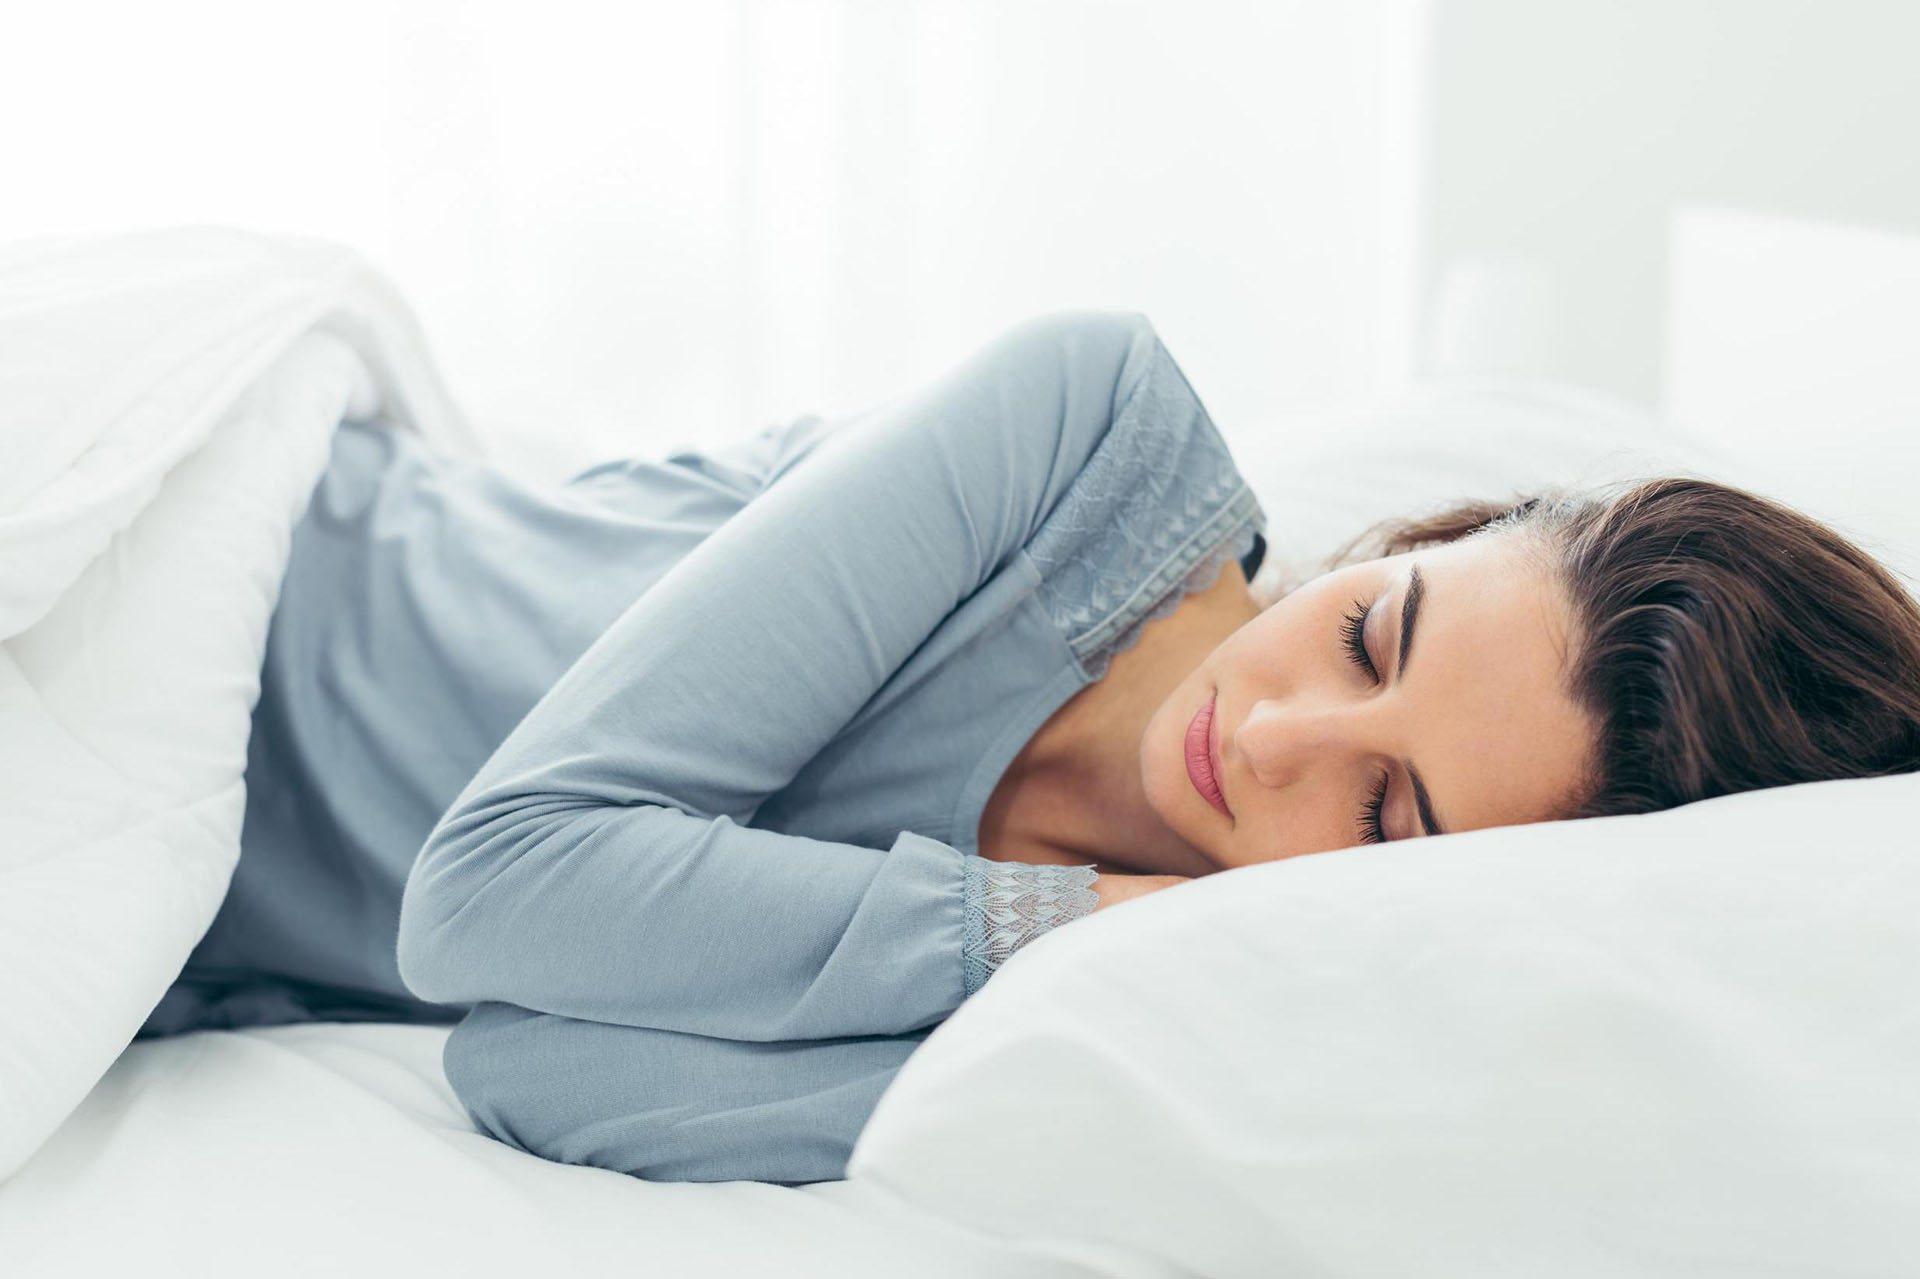 When snoring is an alarm signal